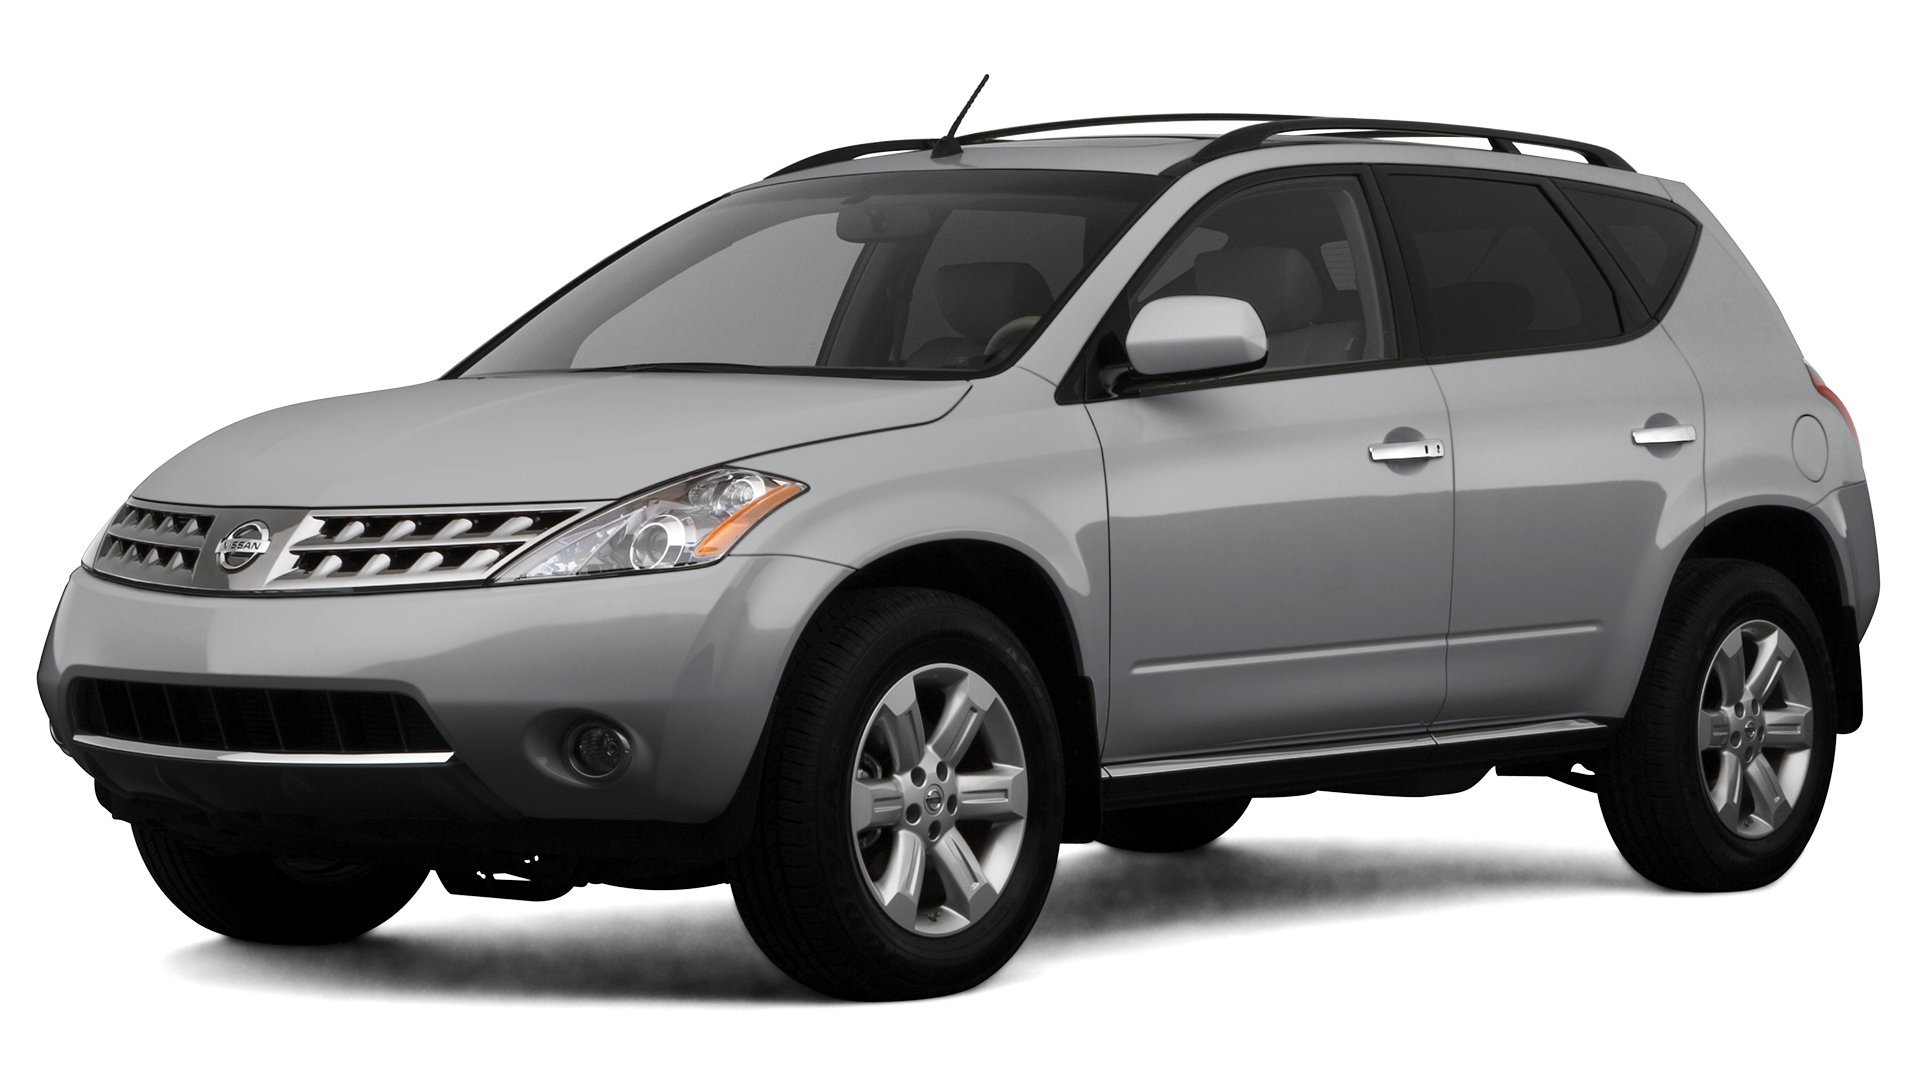 2007 Nissan Murano >> Amazon Com 2007 Nissan Murano Reviews Images And Specs